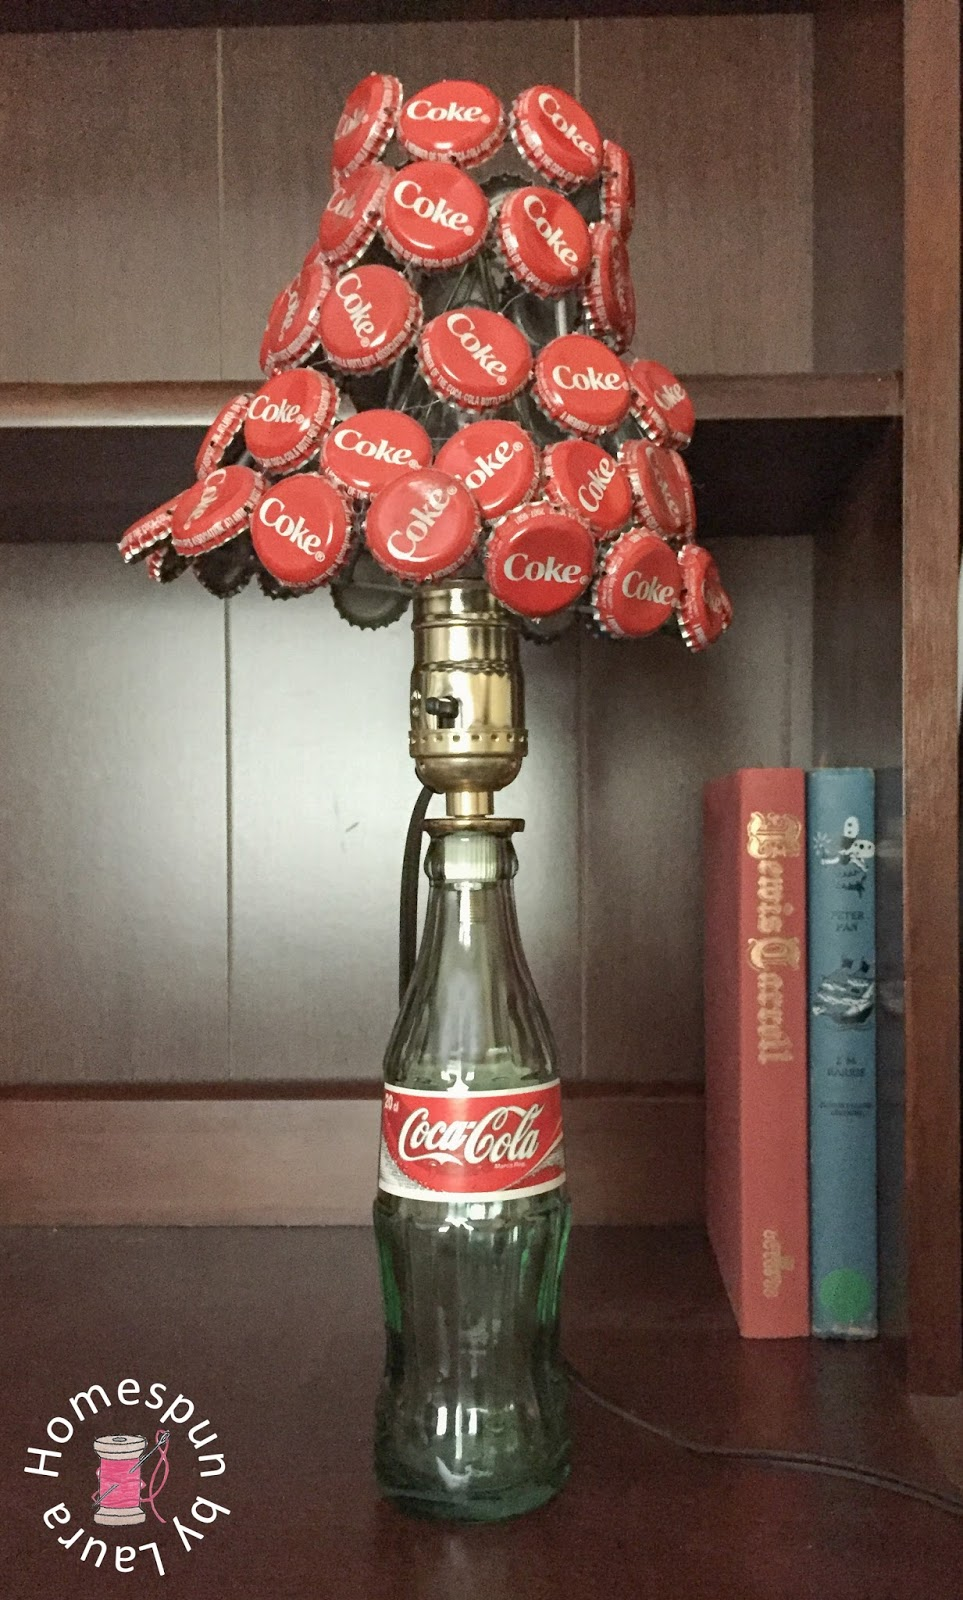 Coke bottle lamp and bottle cap lampshade homespun by laura at that point all that was left to do was tuck in the excess wire and add my new lampshade onto my existing lampand tah dah its a brand new arubaitofo Image collections